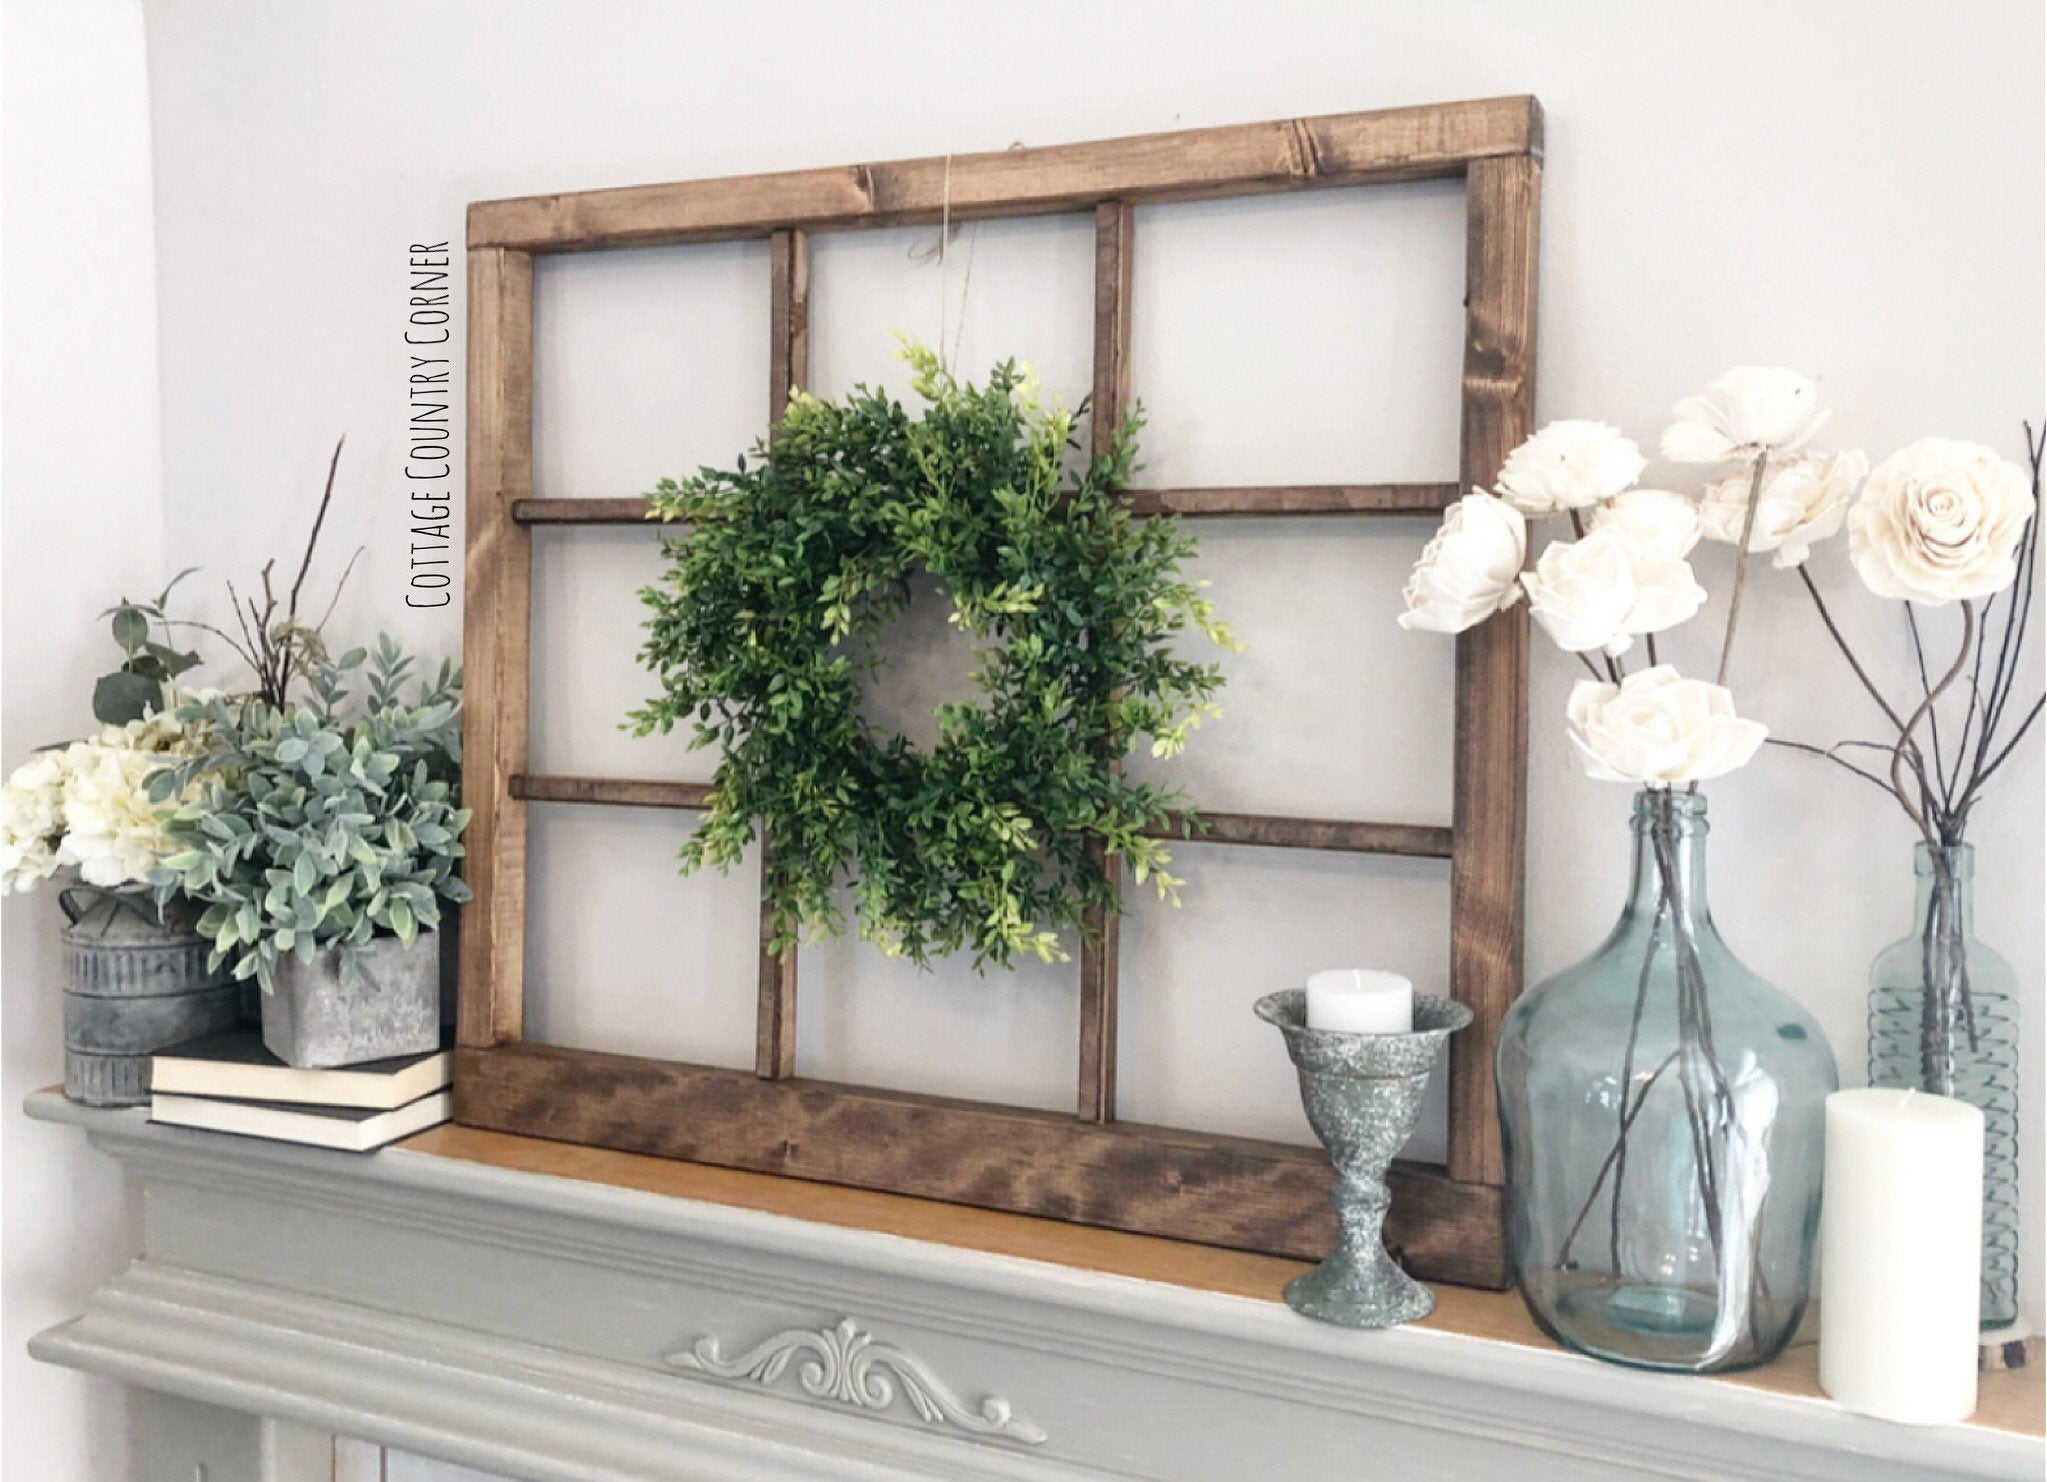 "Window Frame 32"" x 28"" - Heavy Duty Window Frame Wall Decor - Farmhouse Decor - 9 Pane Faux Window Frame - Window - Rustic Window"